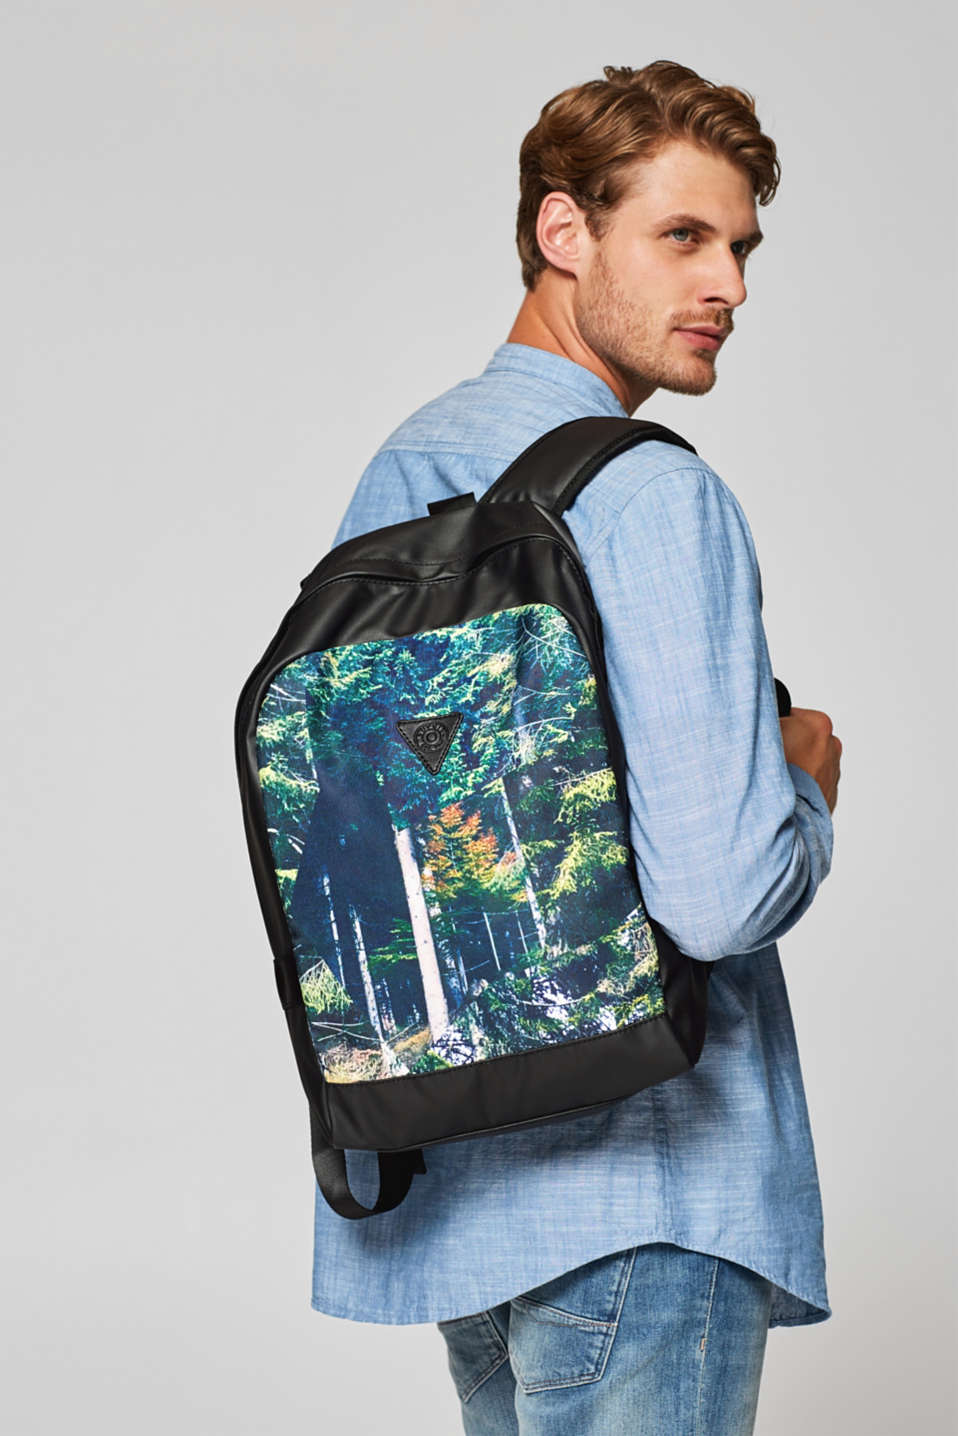 Rucksack with photo print